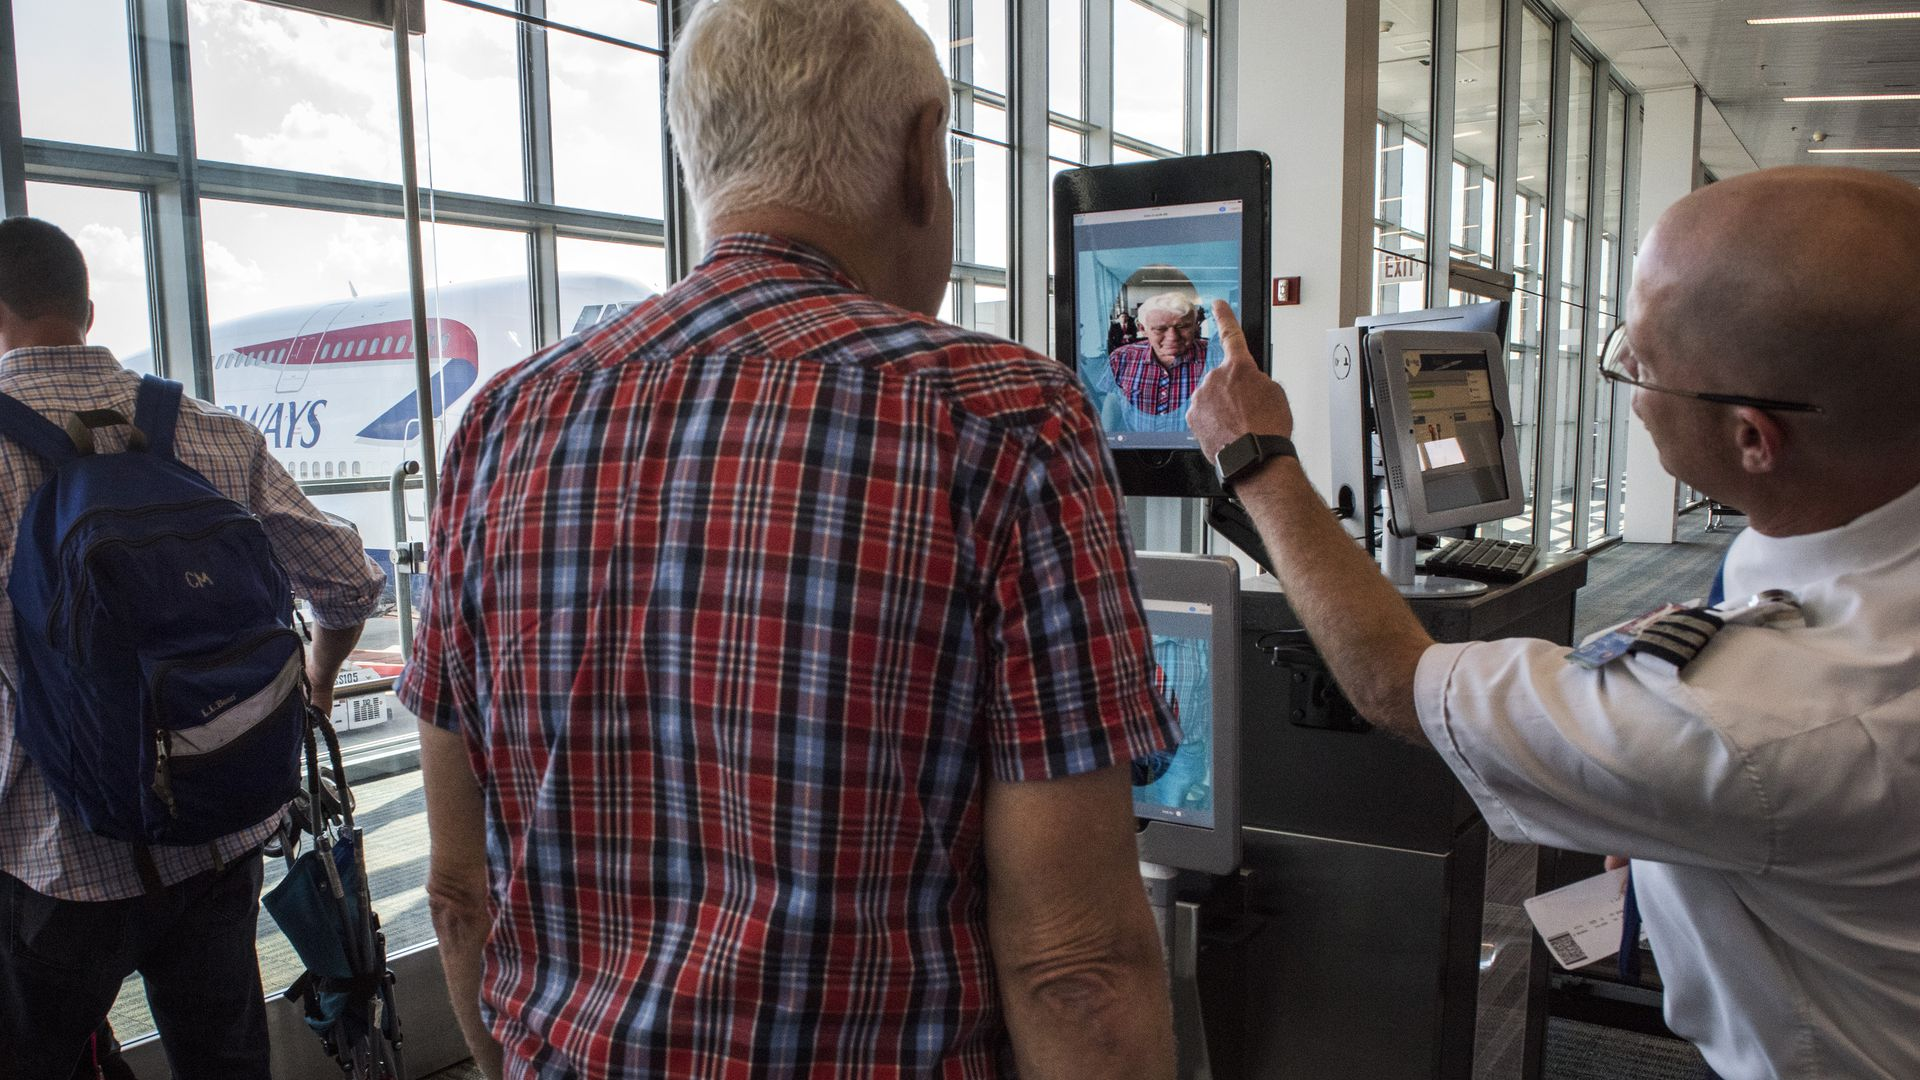 A man looks into a tablet showing his own face as another man points to it